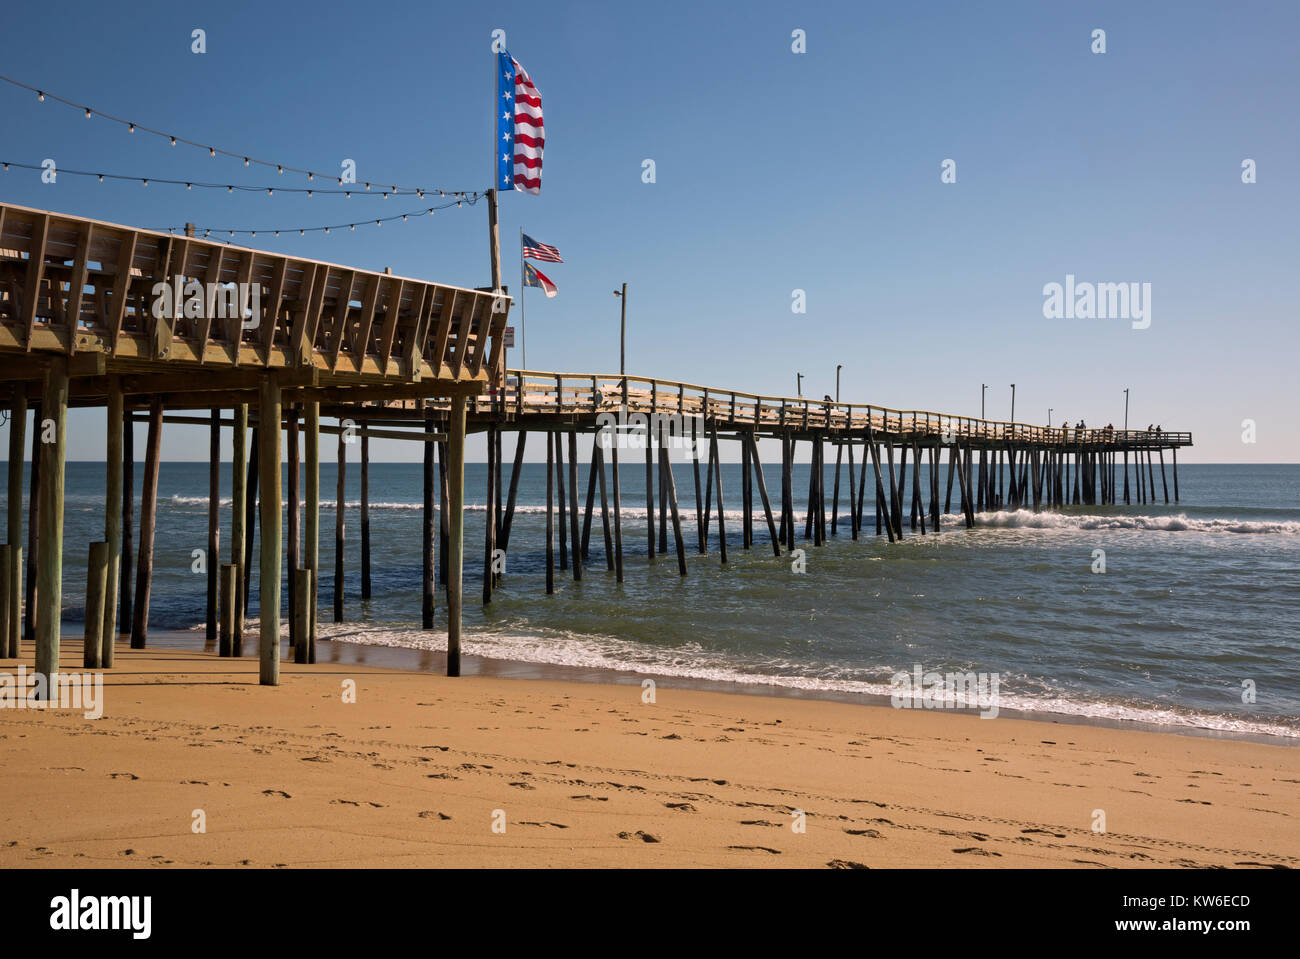 Ocean fishing pier stock photos ocean fishing pier stock for Atlantic city fishing pier